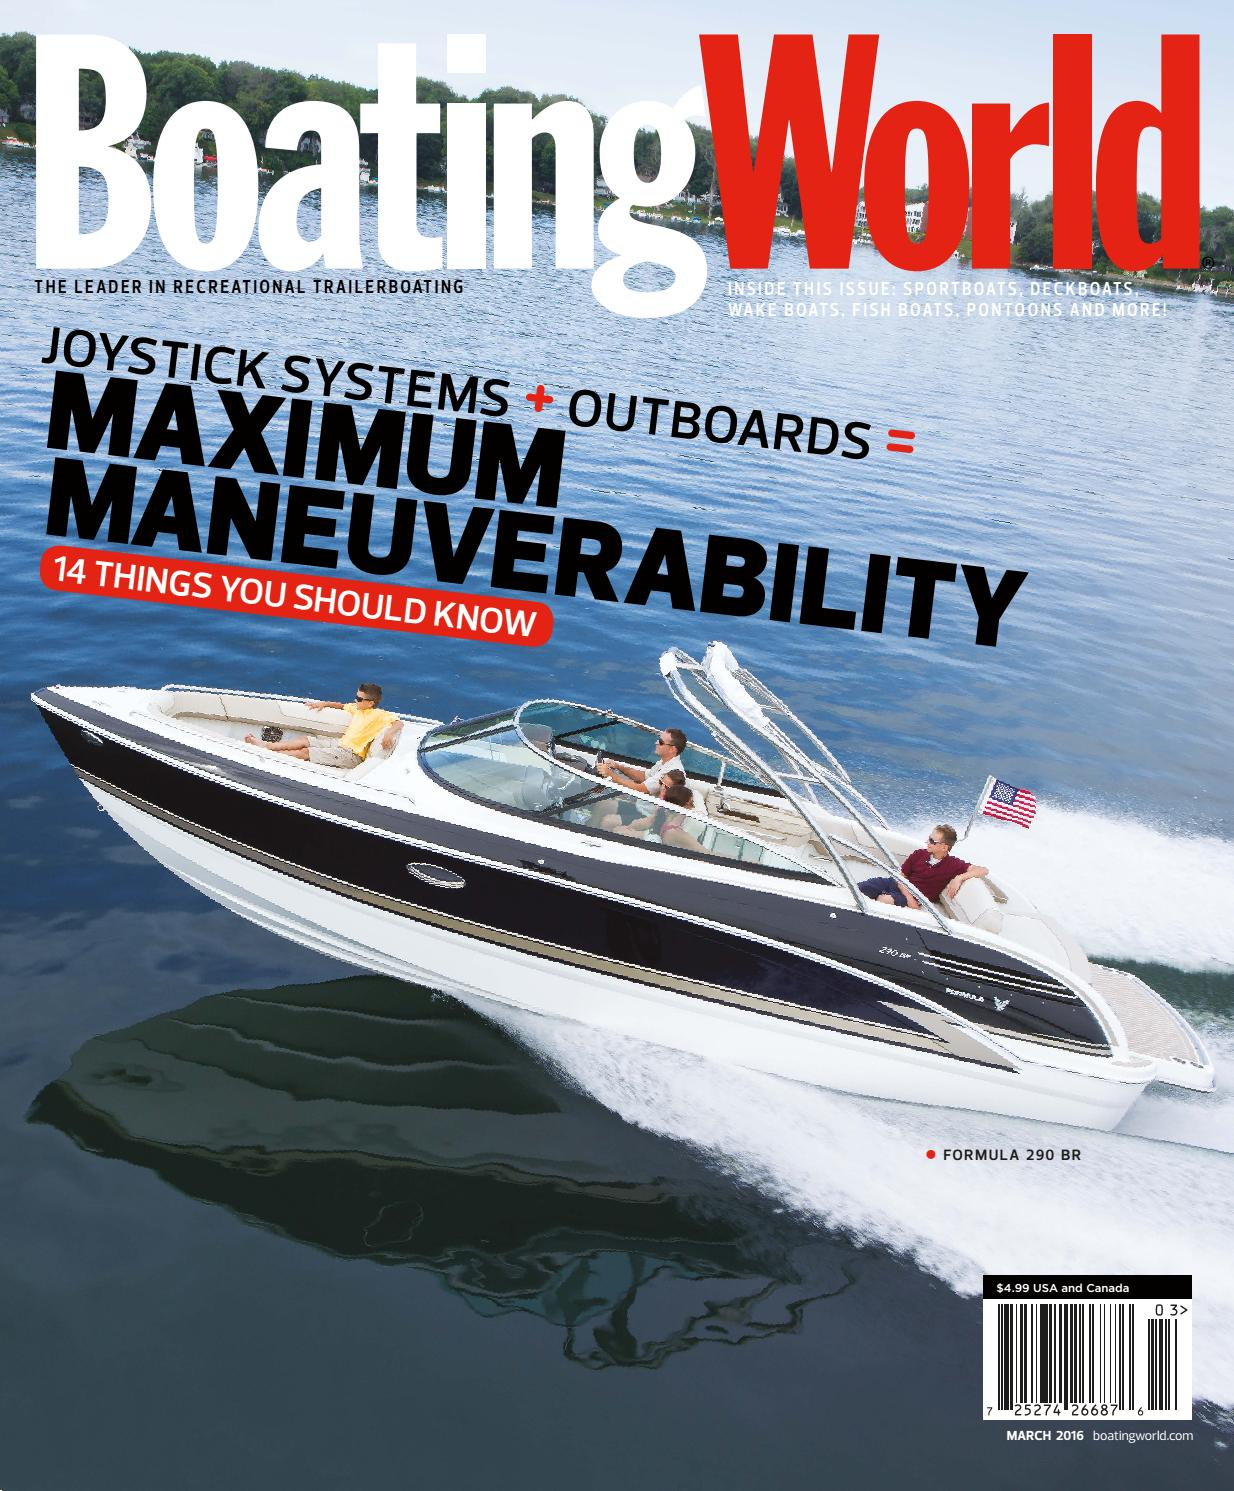 page_1 march 2016 boating world magazine by duncan mcintosh company issuu  at n-0.co